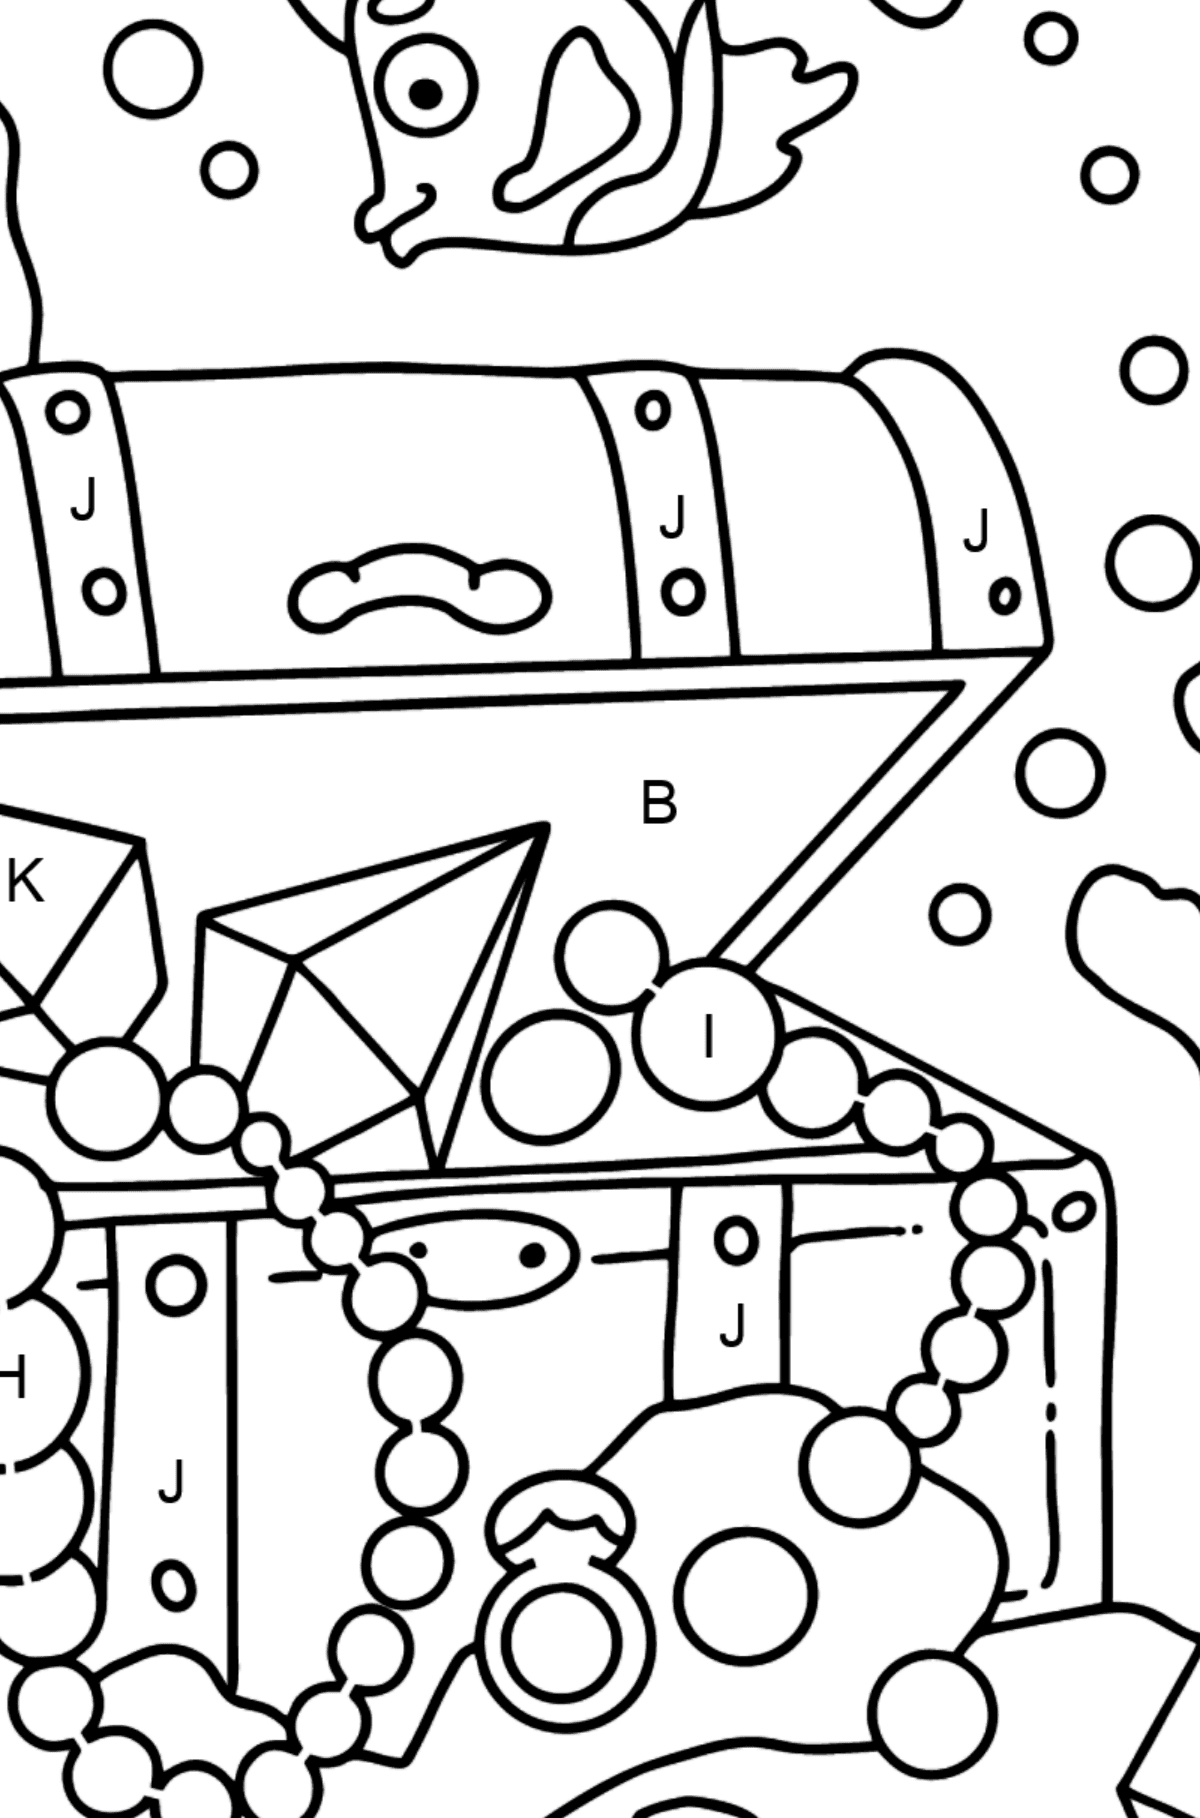 Coloring Page - A Fish is Swimming Around a Pirate's Chest - Coloring by Letters for Kids